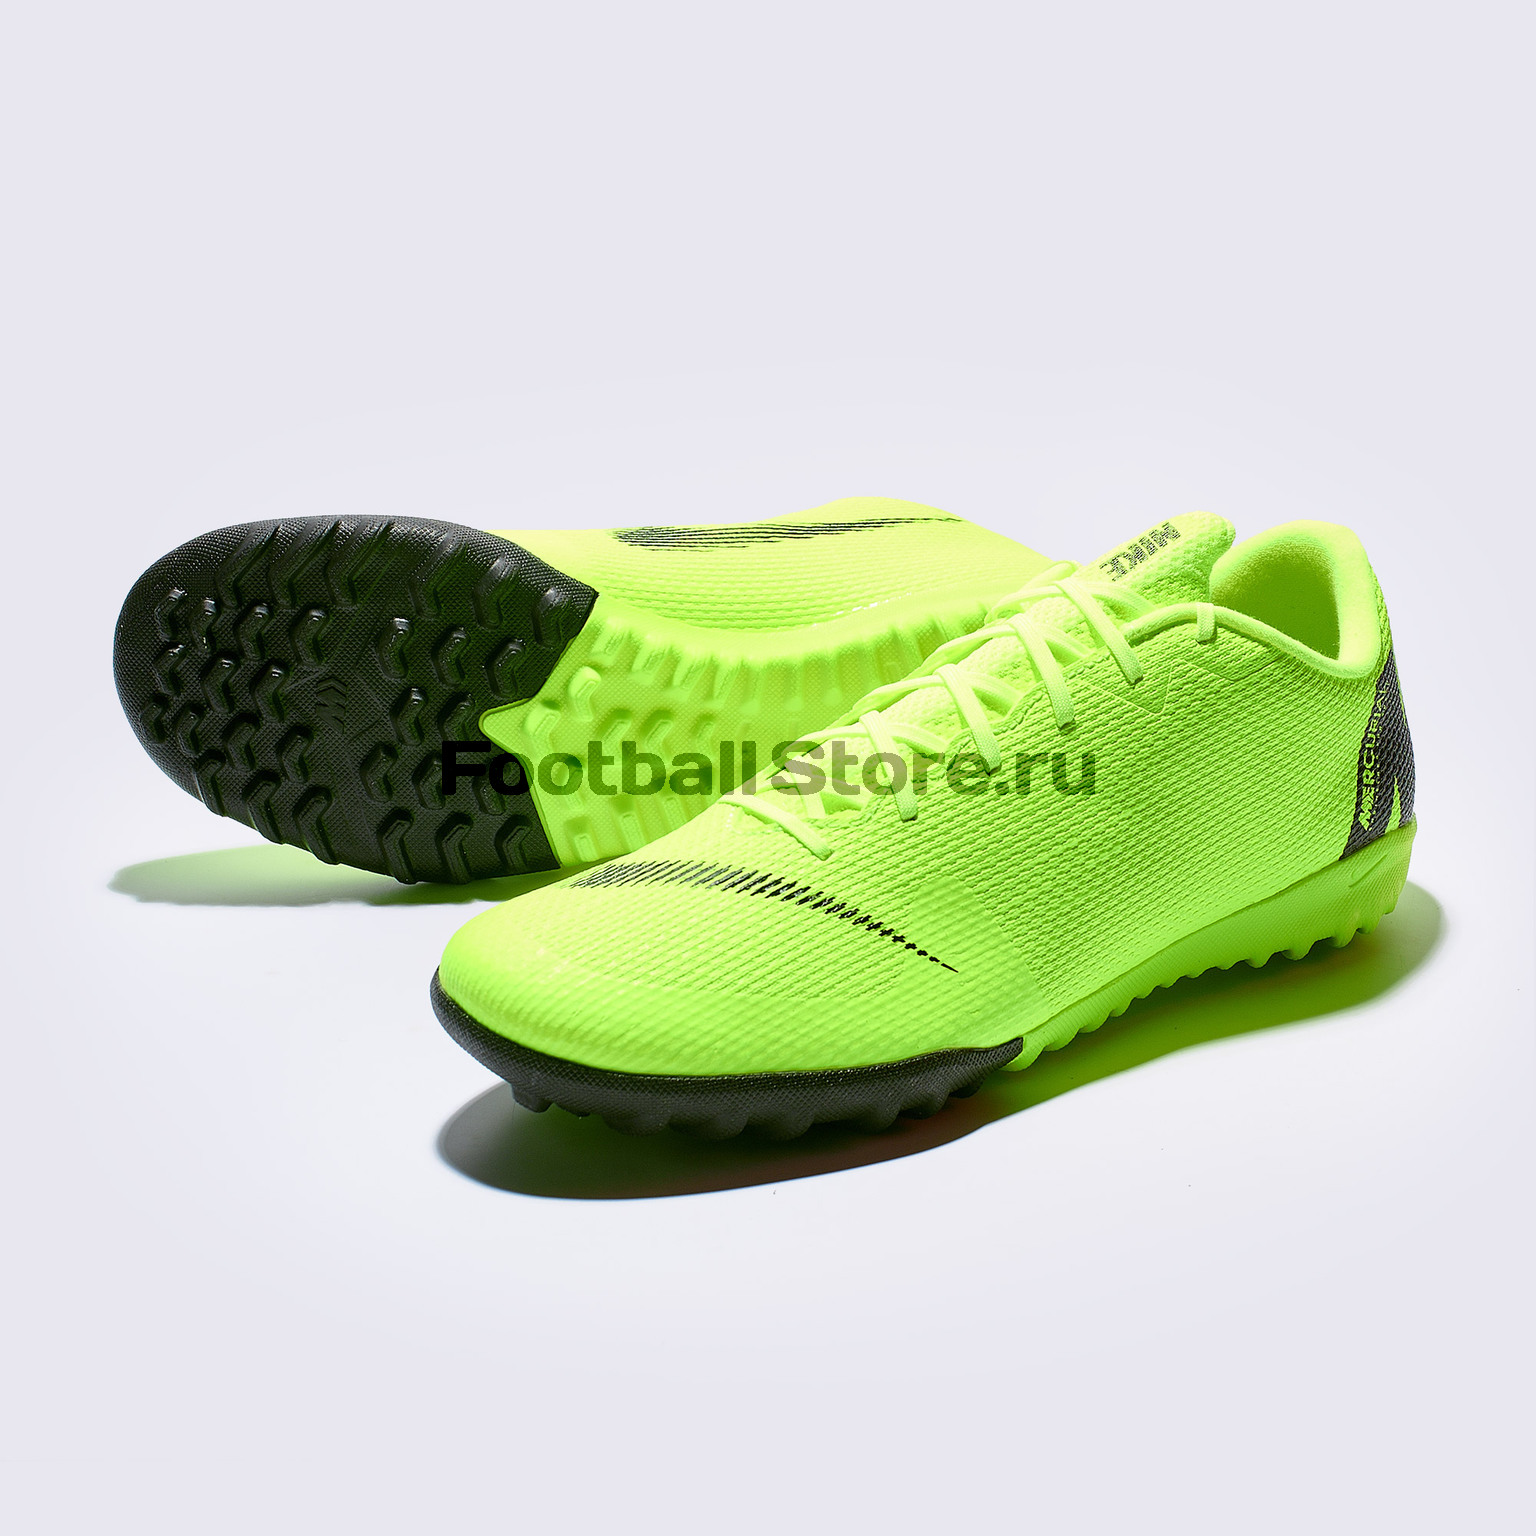 Шиповки Nike VaporX 12 Academy TF AH7384-701 спортинвентарь nike чехол для iphone 6 на руку nike vapor flash arm band 2 0 n rn 50 078 os